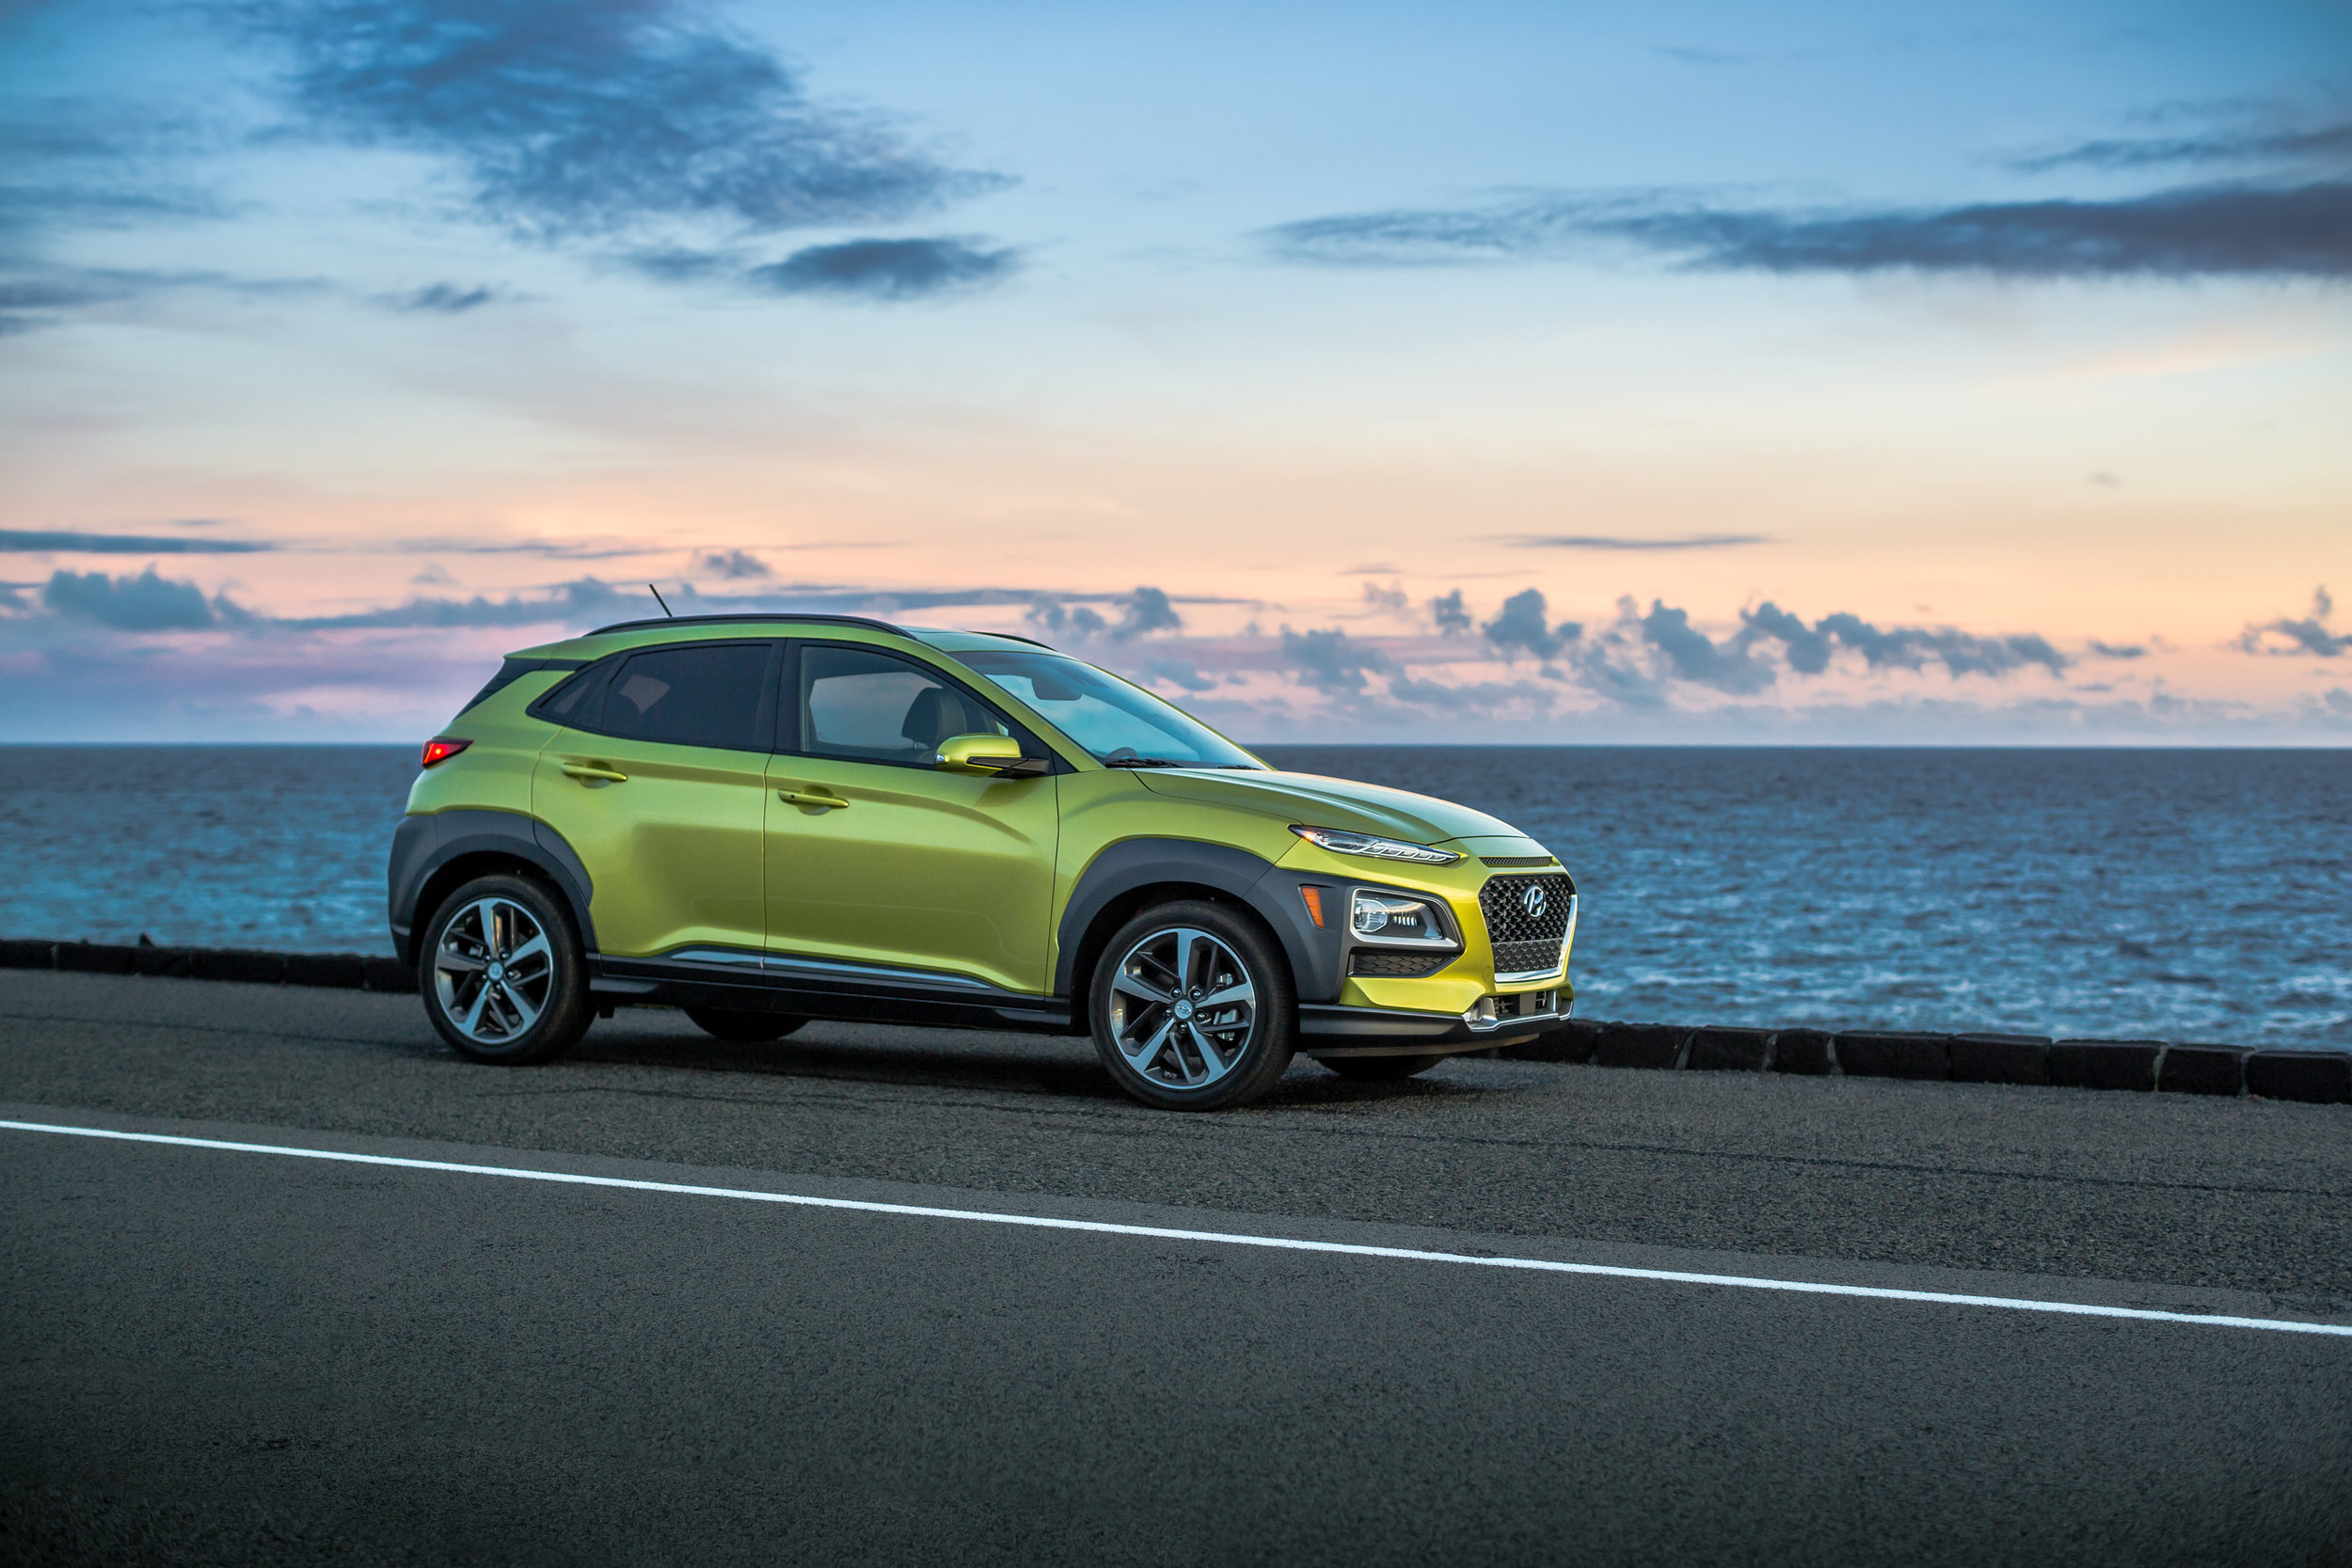 2019 HYUNDAI KONA PHOTO: HYUNDAI CANADA